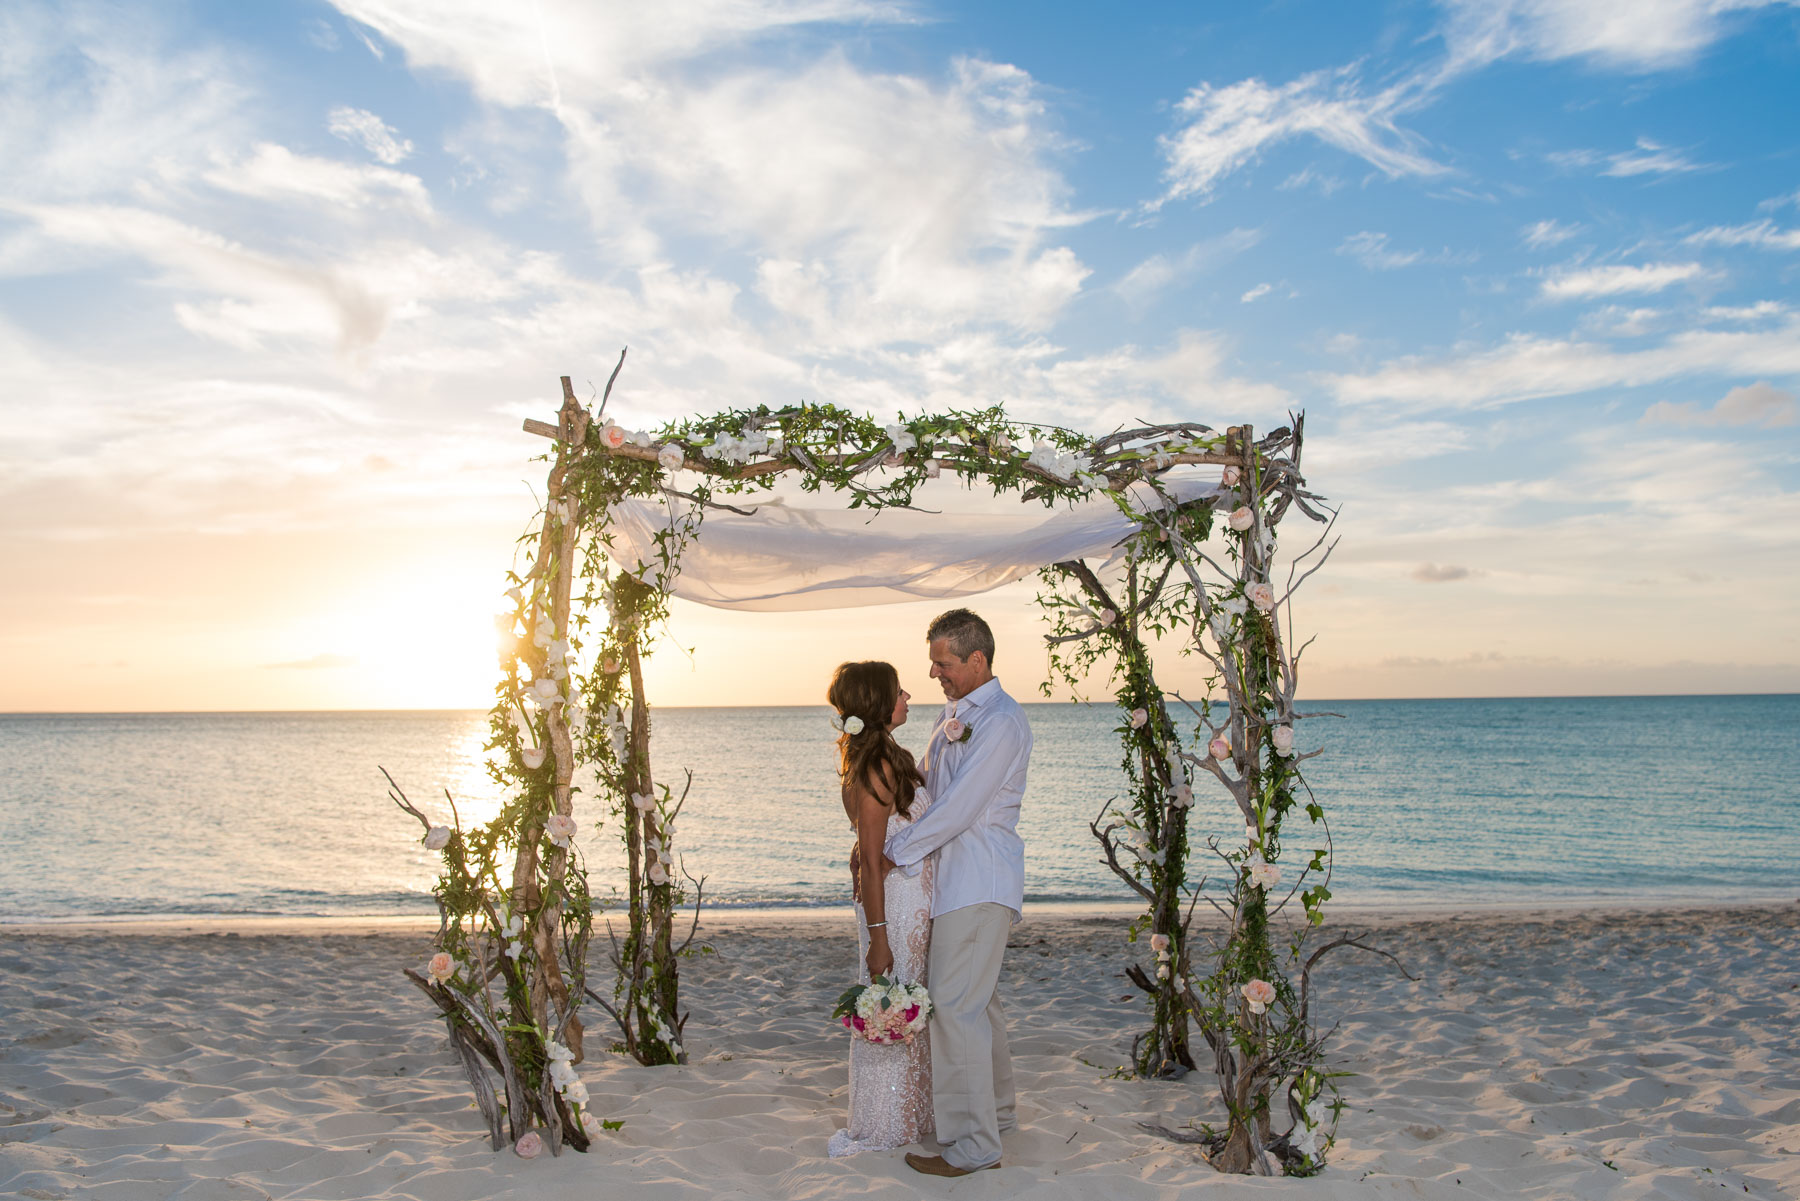 18 Jul Family Wedding At The Regent Grand Turks And Caicos Islands